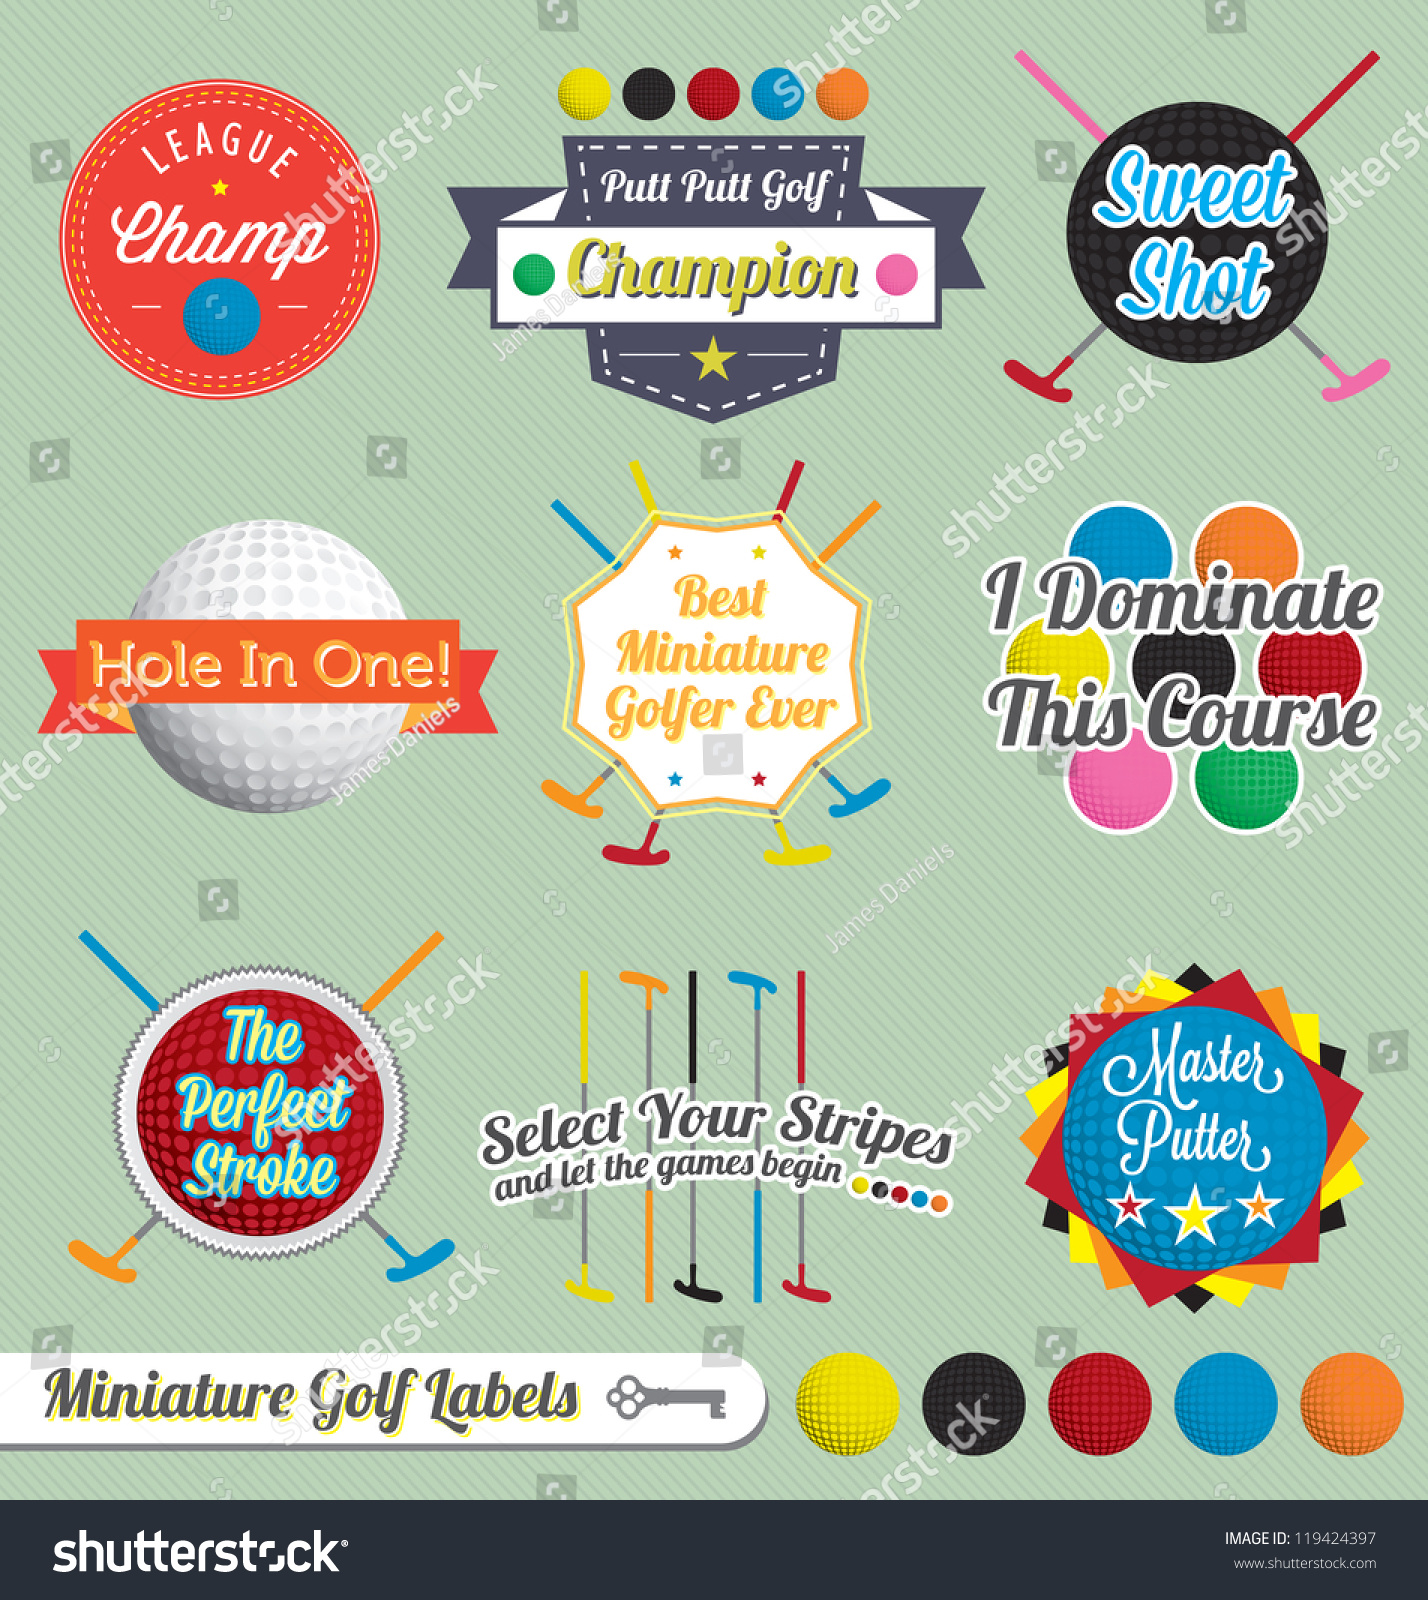 how to start golfing what clubs do i need